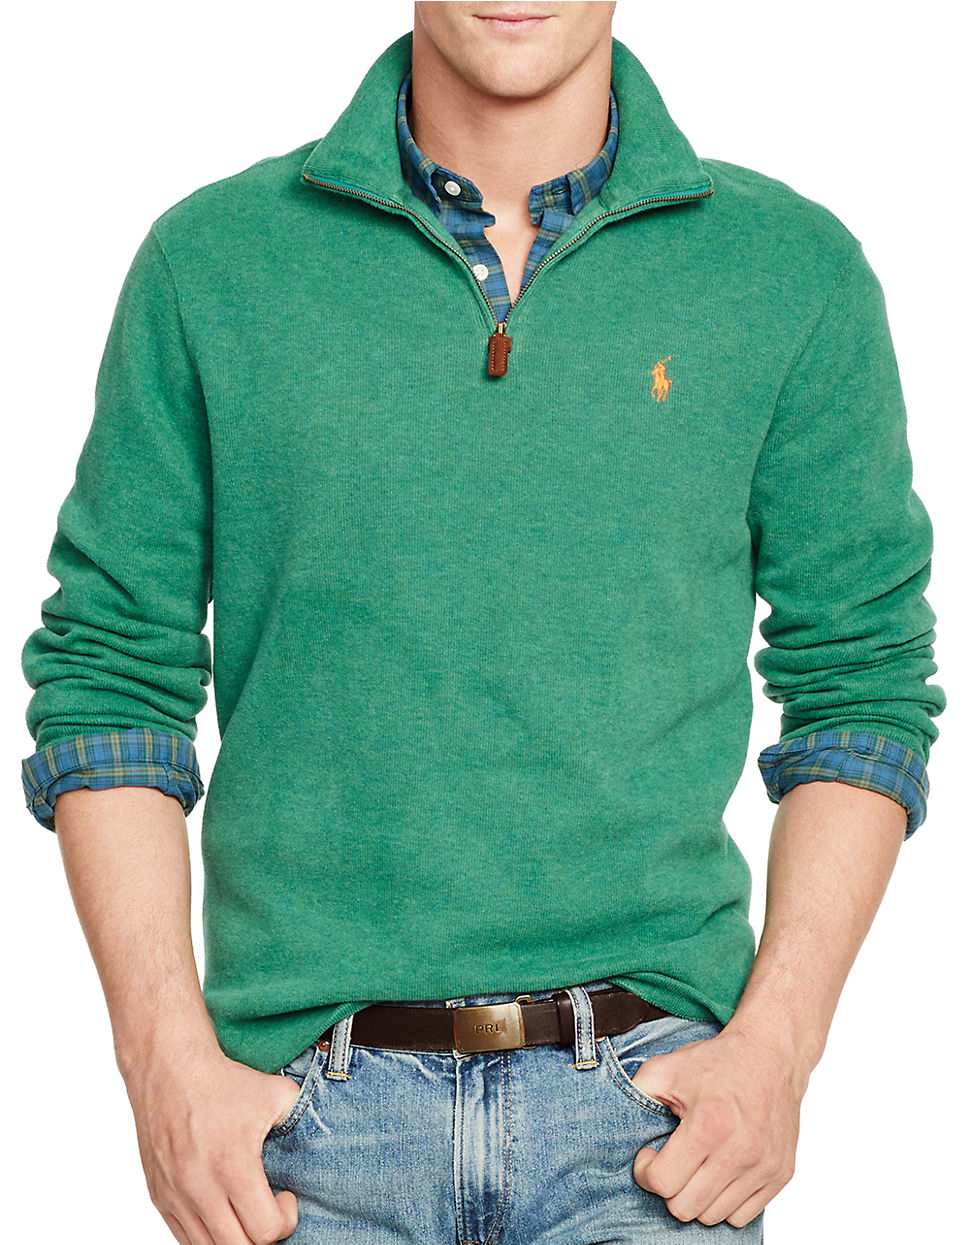 polo ralph lauren french rib half zip pullover in green for men green. Black Bedroom Furniture Sets. Home Design Ideas